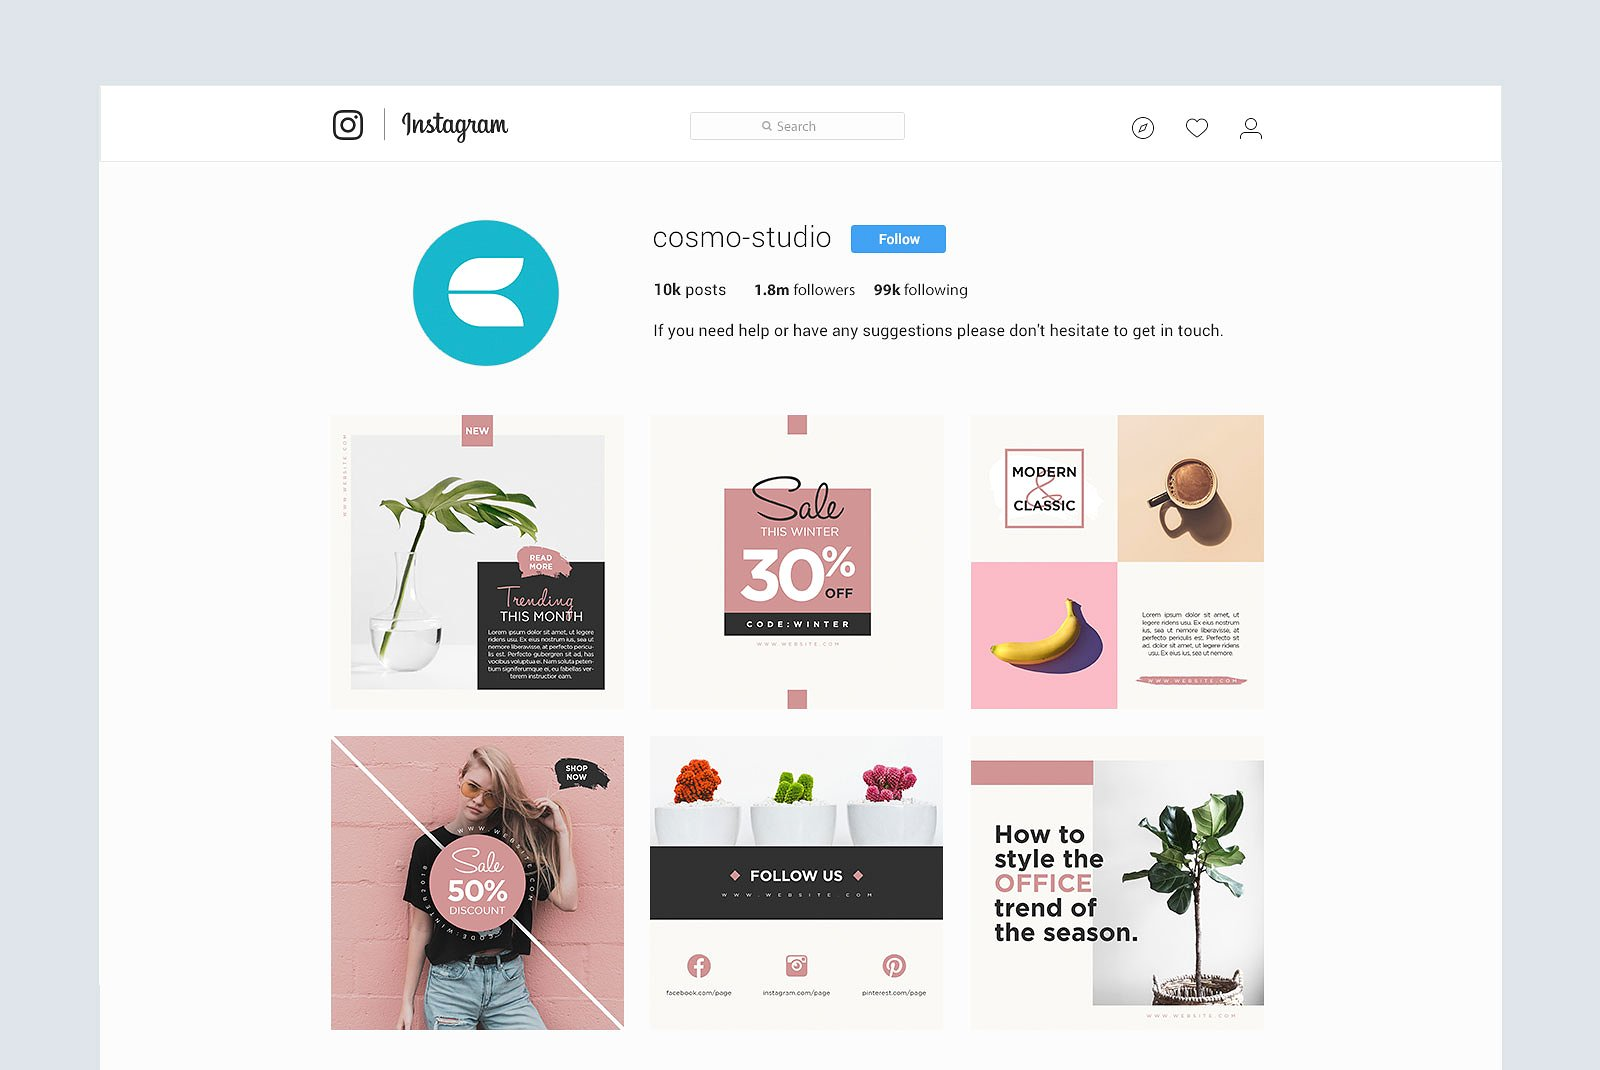 Gravity Instagram Pack Graphic Web Elements By wally6484 - Image 7